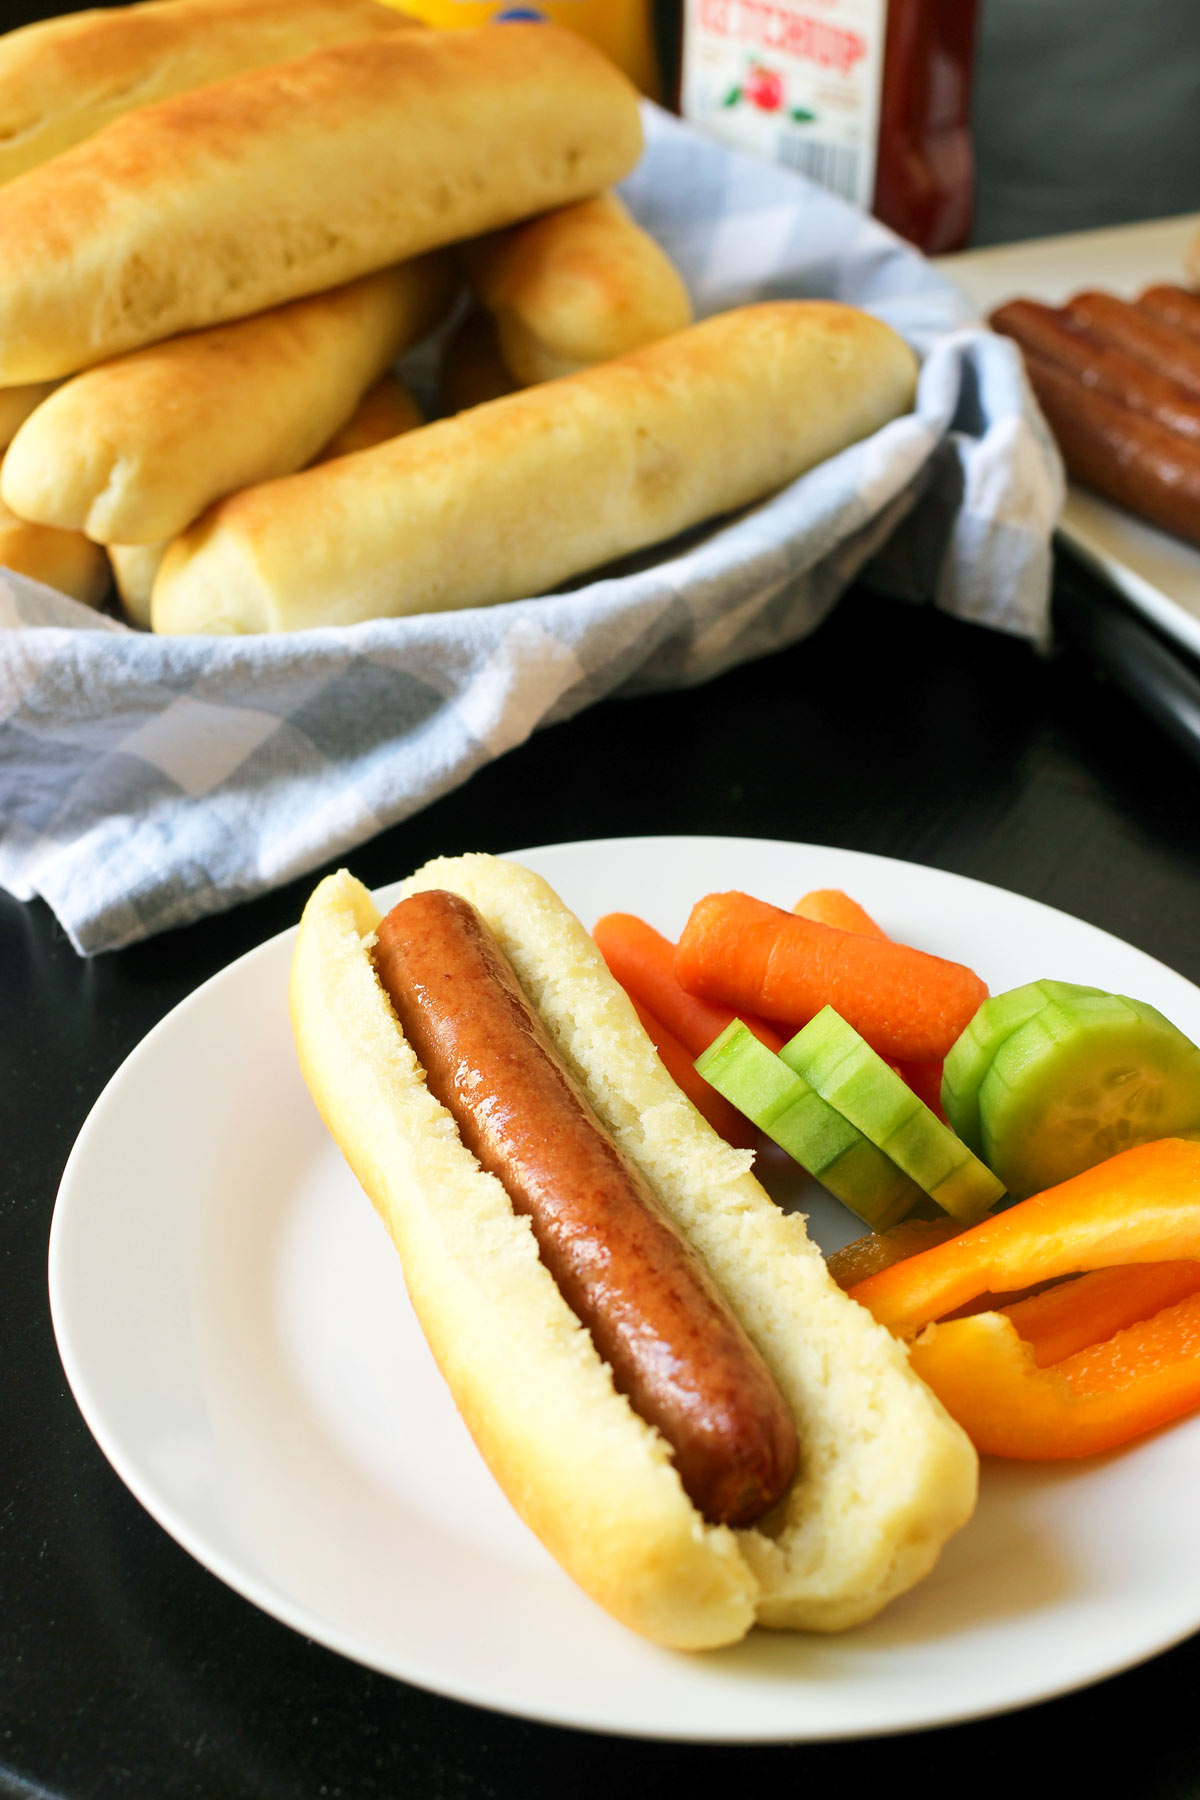 table set with dinner fixings and a small white plate with a hot dog on homemade hot dog bun with veggie dippers.